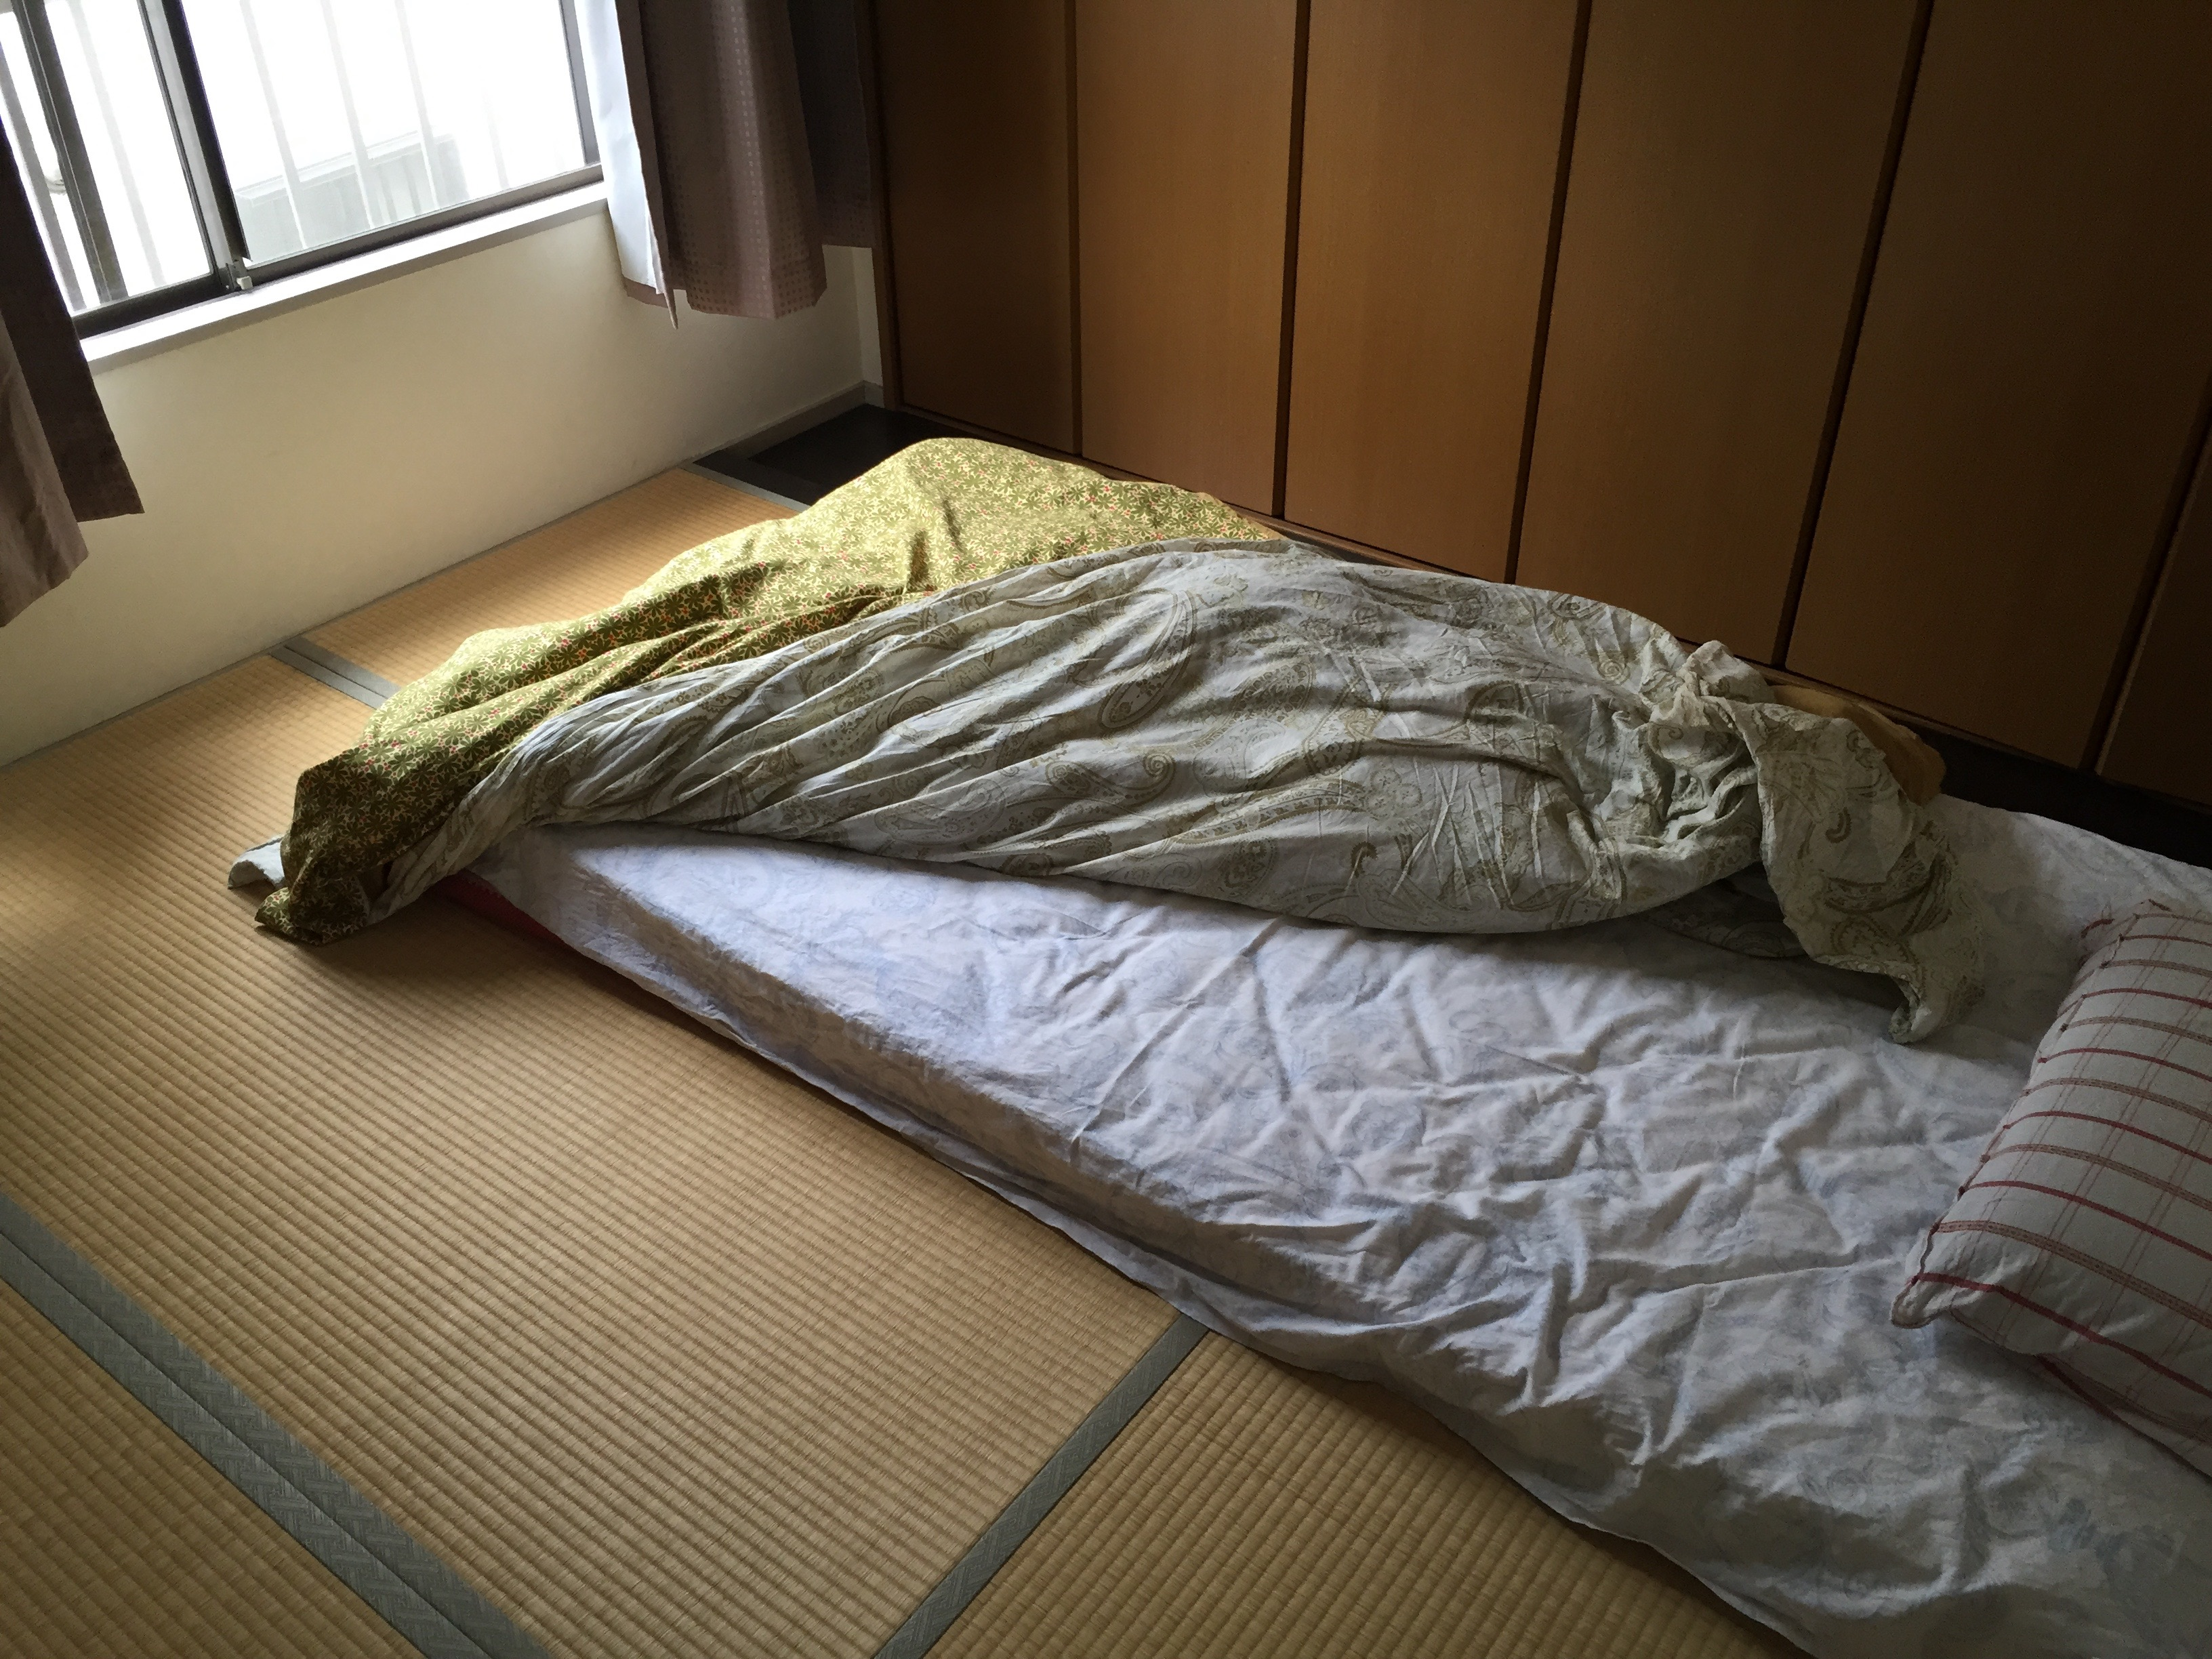 on x a of asian floor the photo futon and covered mats are sleeping re tatami you floors with mat